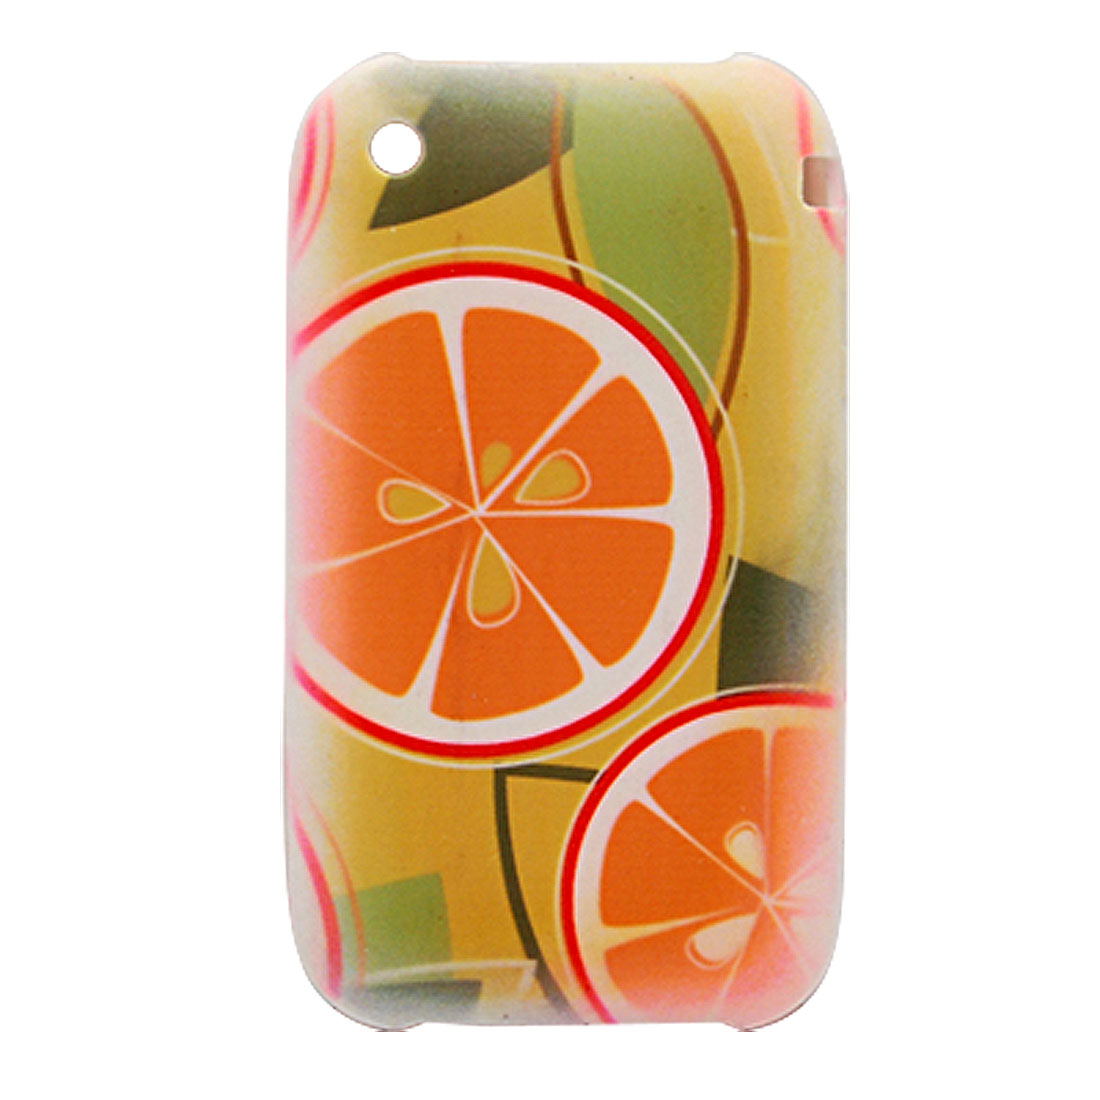 Fruit Pattern Silicone Skin Case Cove for iPhone 3G